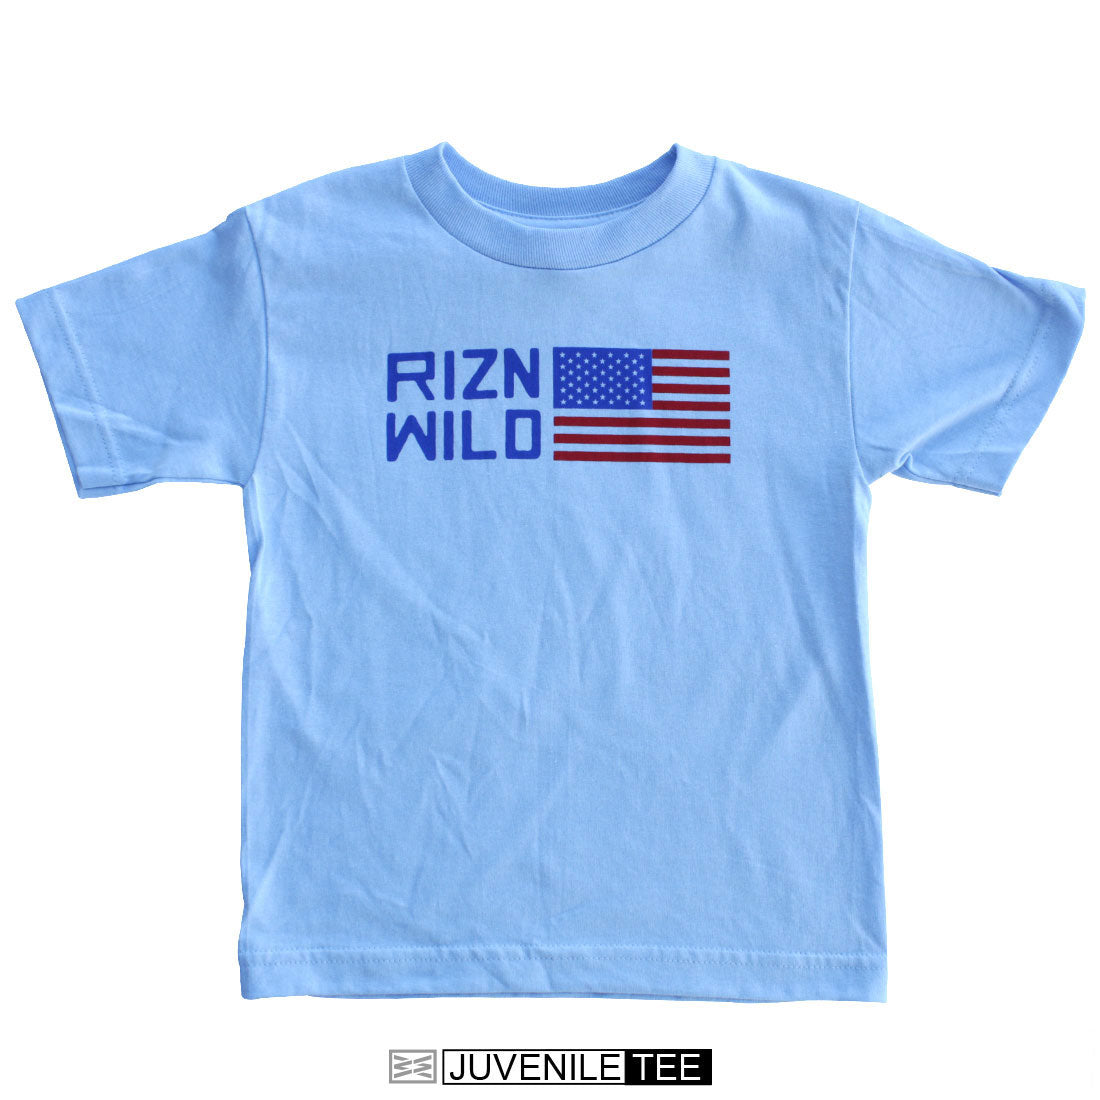 RIZNWILD | Patriot Juvenile short sleeve tee powder blue american flag logo